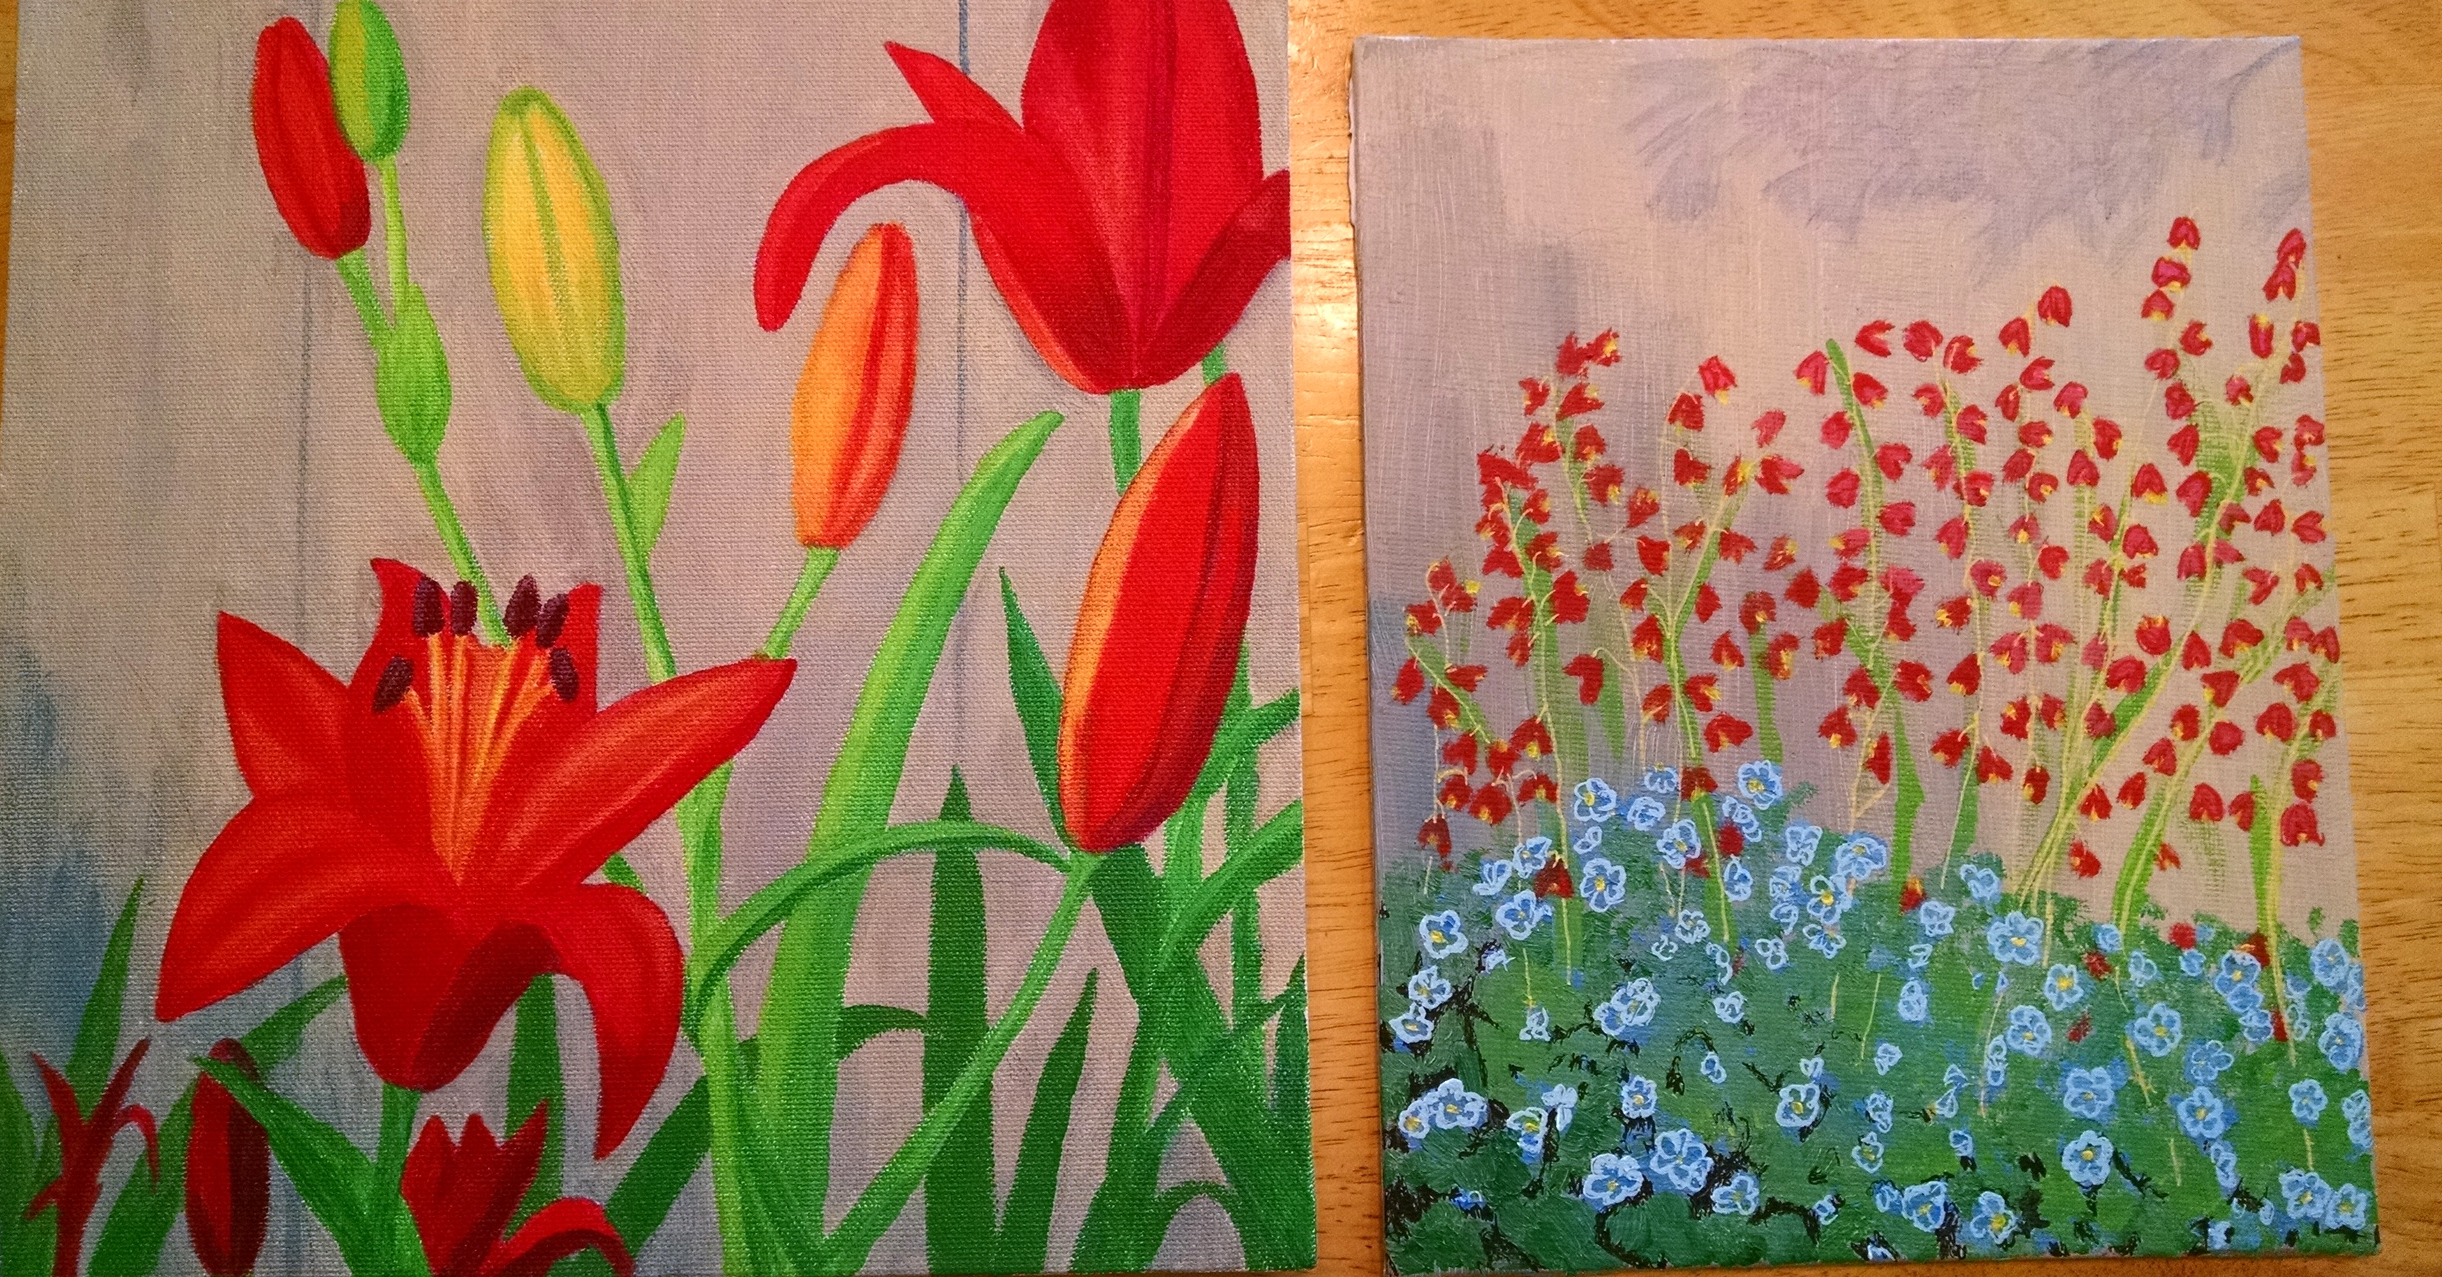 Red Lilies (on canvas) and Coral Bells (on art board). Gifted to my brother Joseph and sister Jo Ann, respectively.